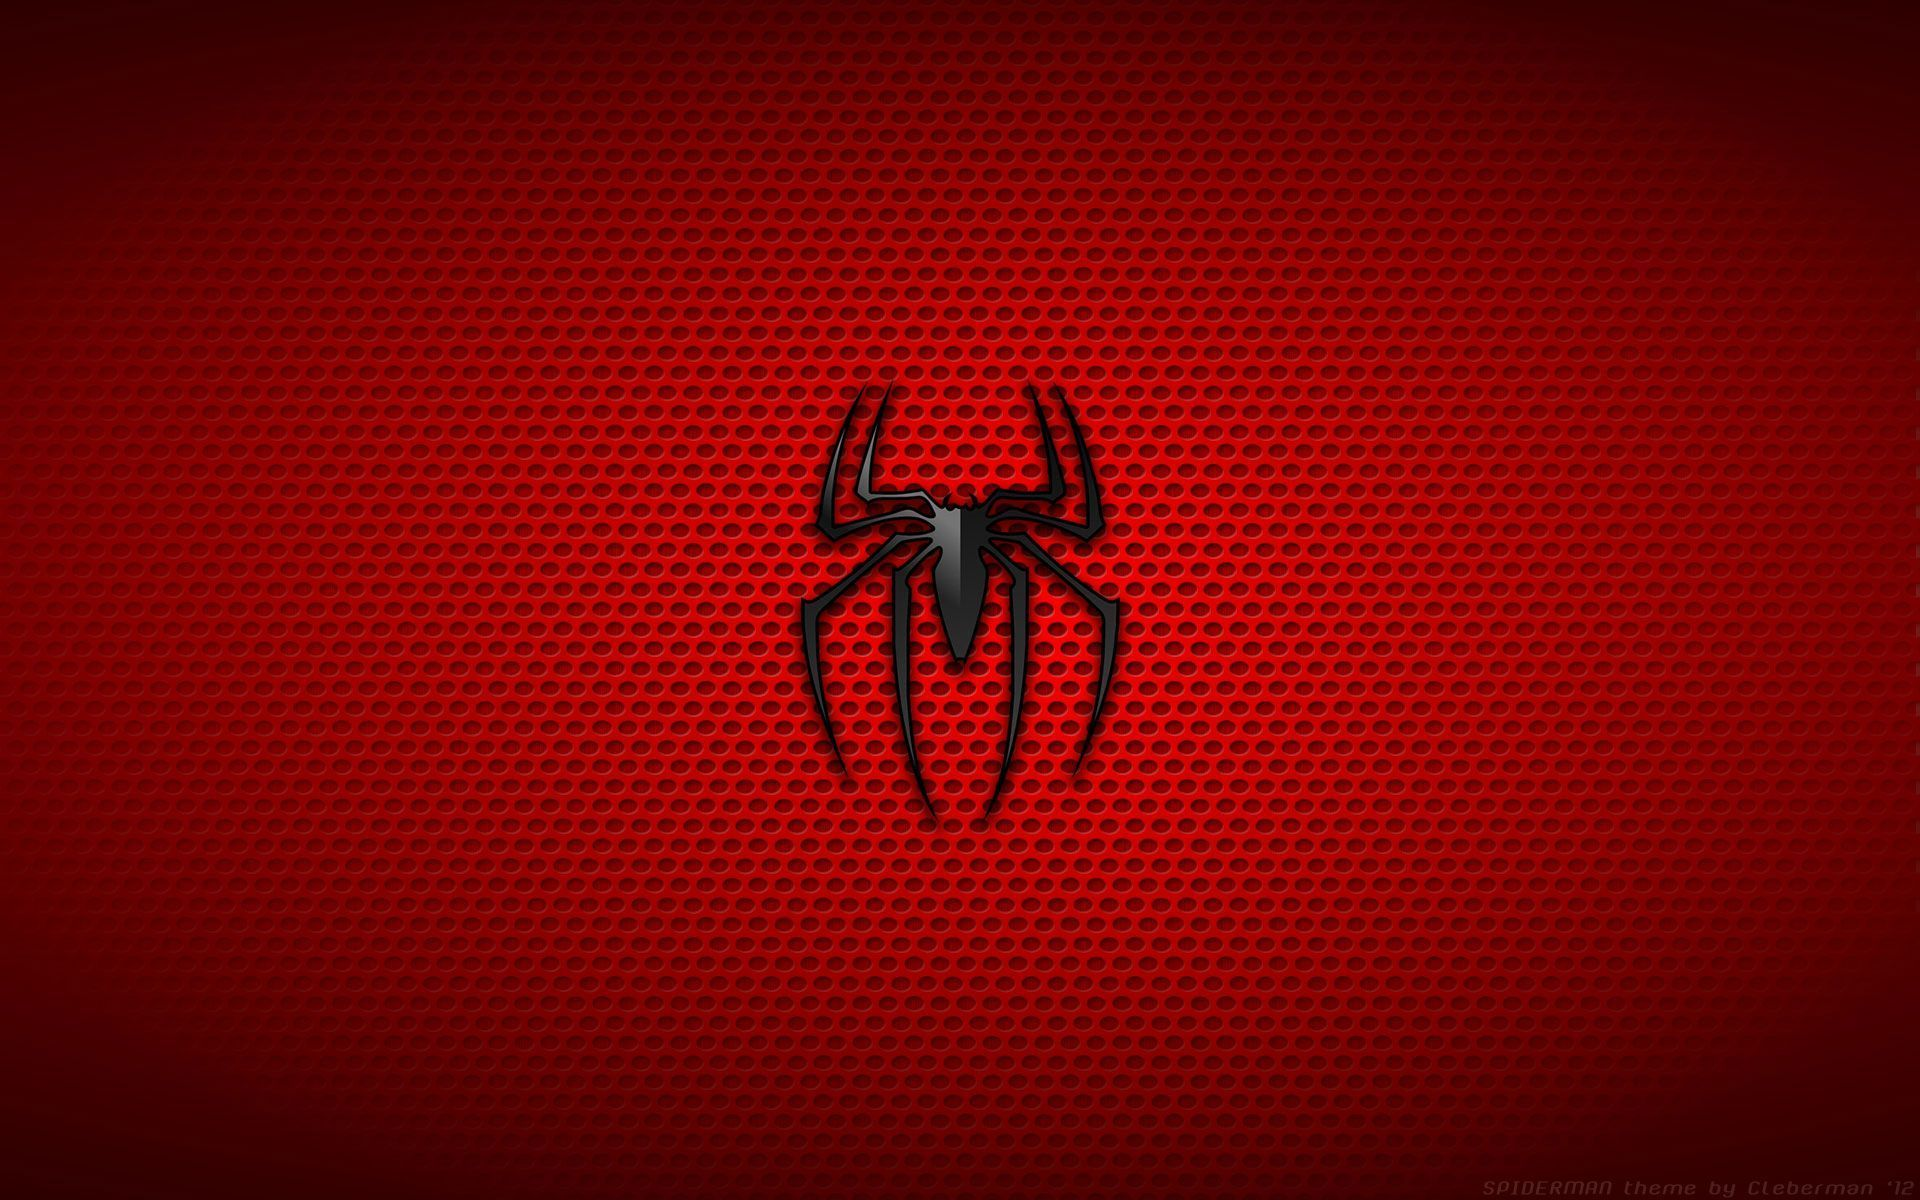 Spiderman Logo Wallpaper Hd Msj Spiderman Pictures Man Wallpaper Superhero Wallpaper